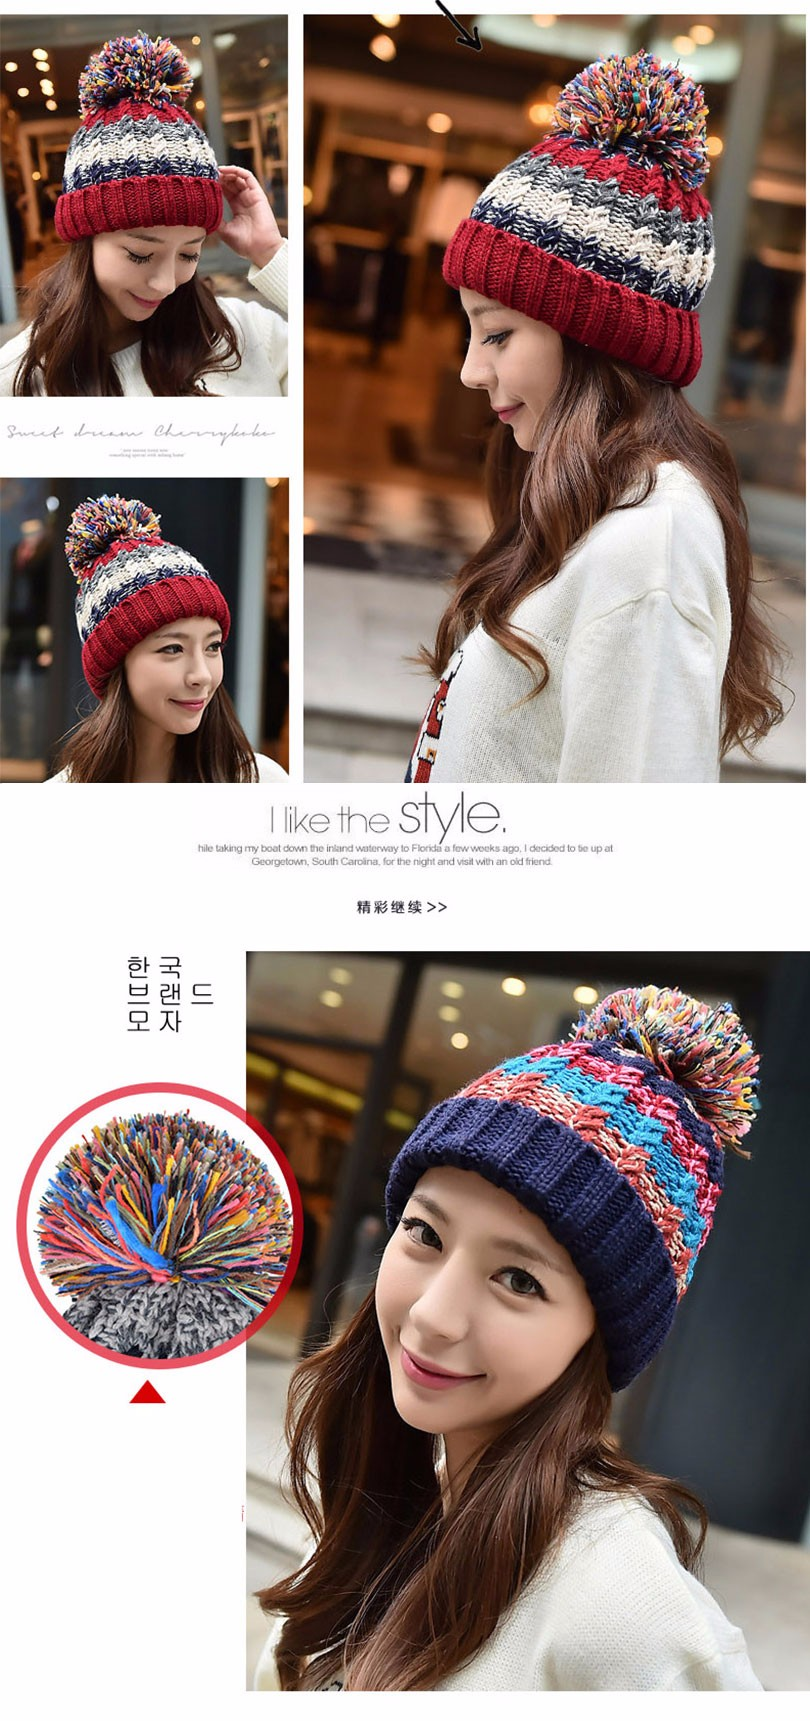 2016 New Fashion Woman's Warm Acrylic Pashmina Hats Knitted Cap Crochet Hats For Ladies Thick Winter Cute Casual Women Beanies